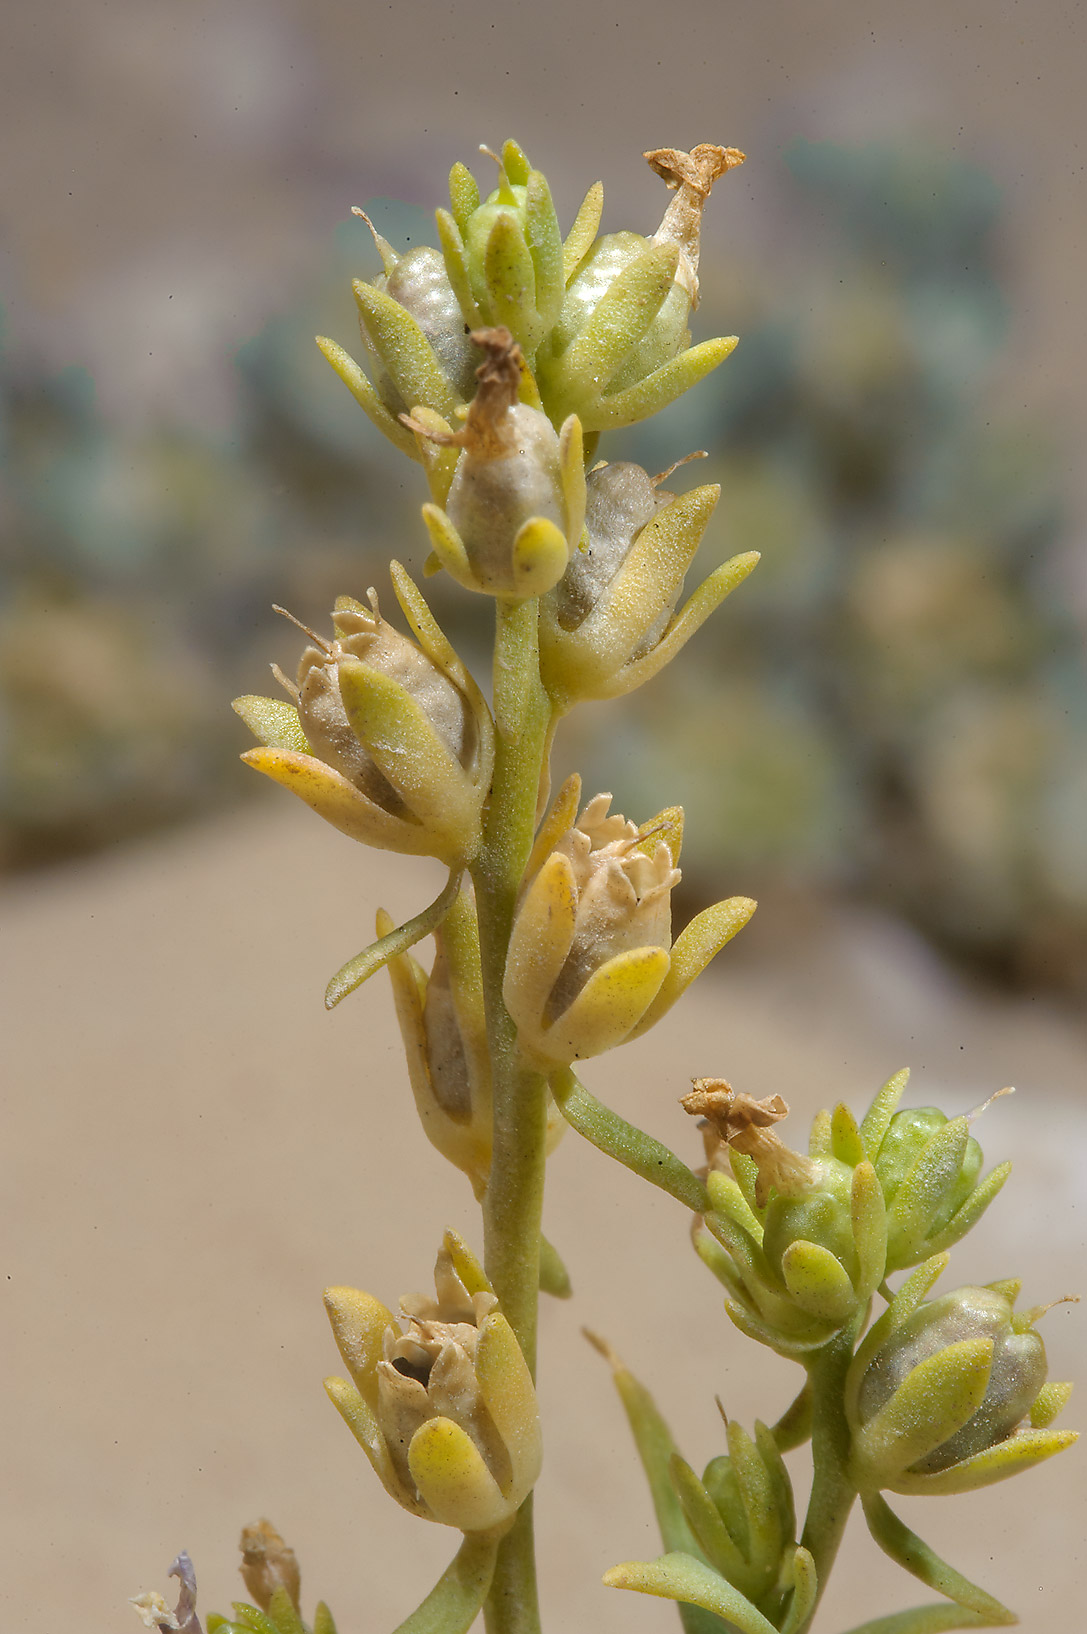 Linaria albifrons with seed capsules near Ras Laffan. Qatar